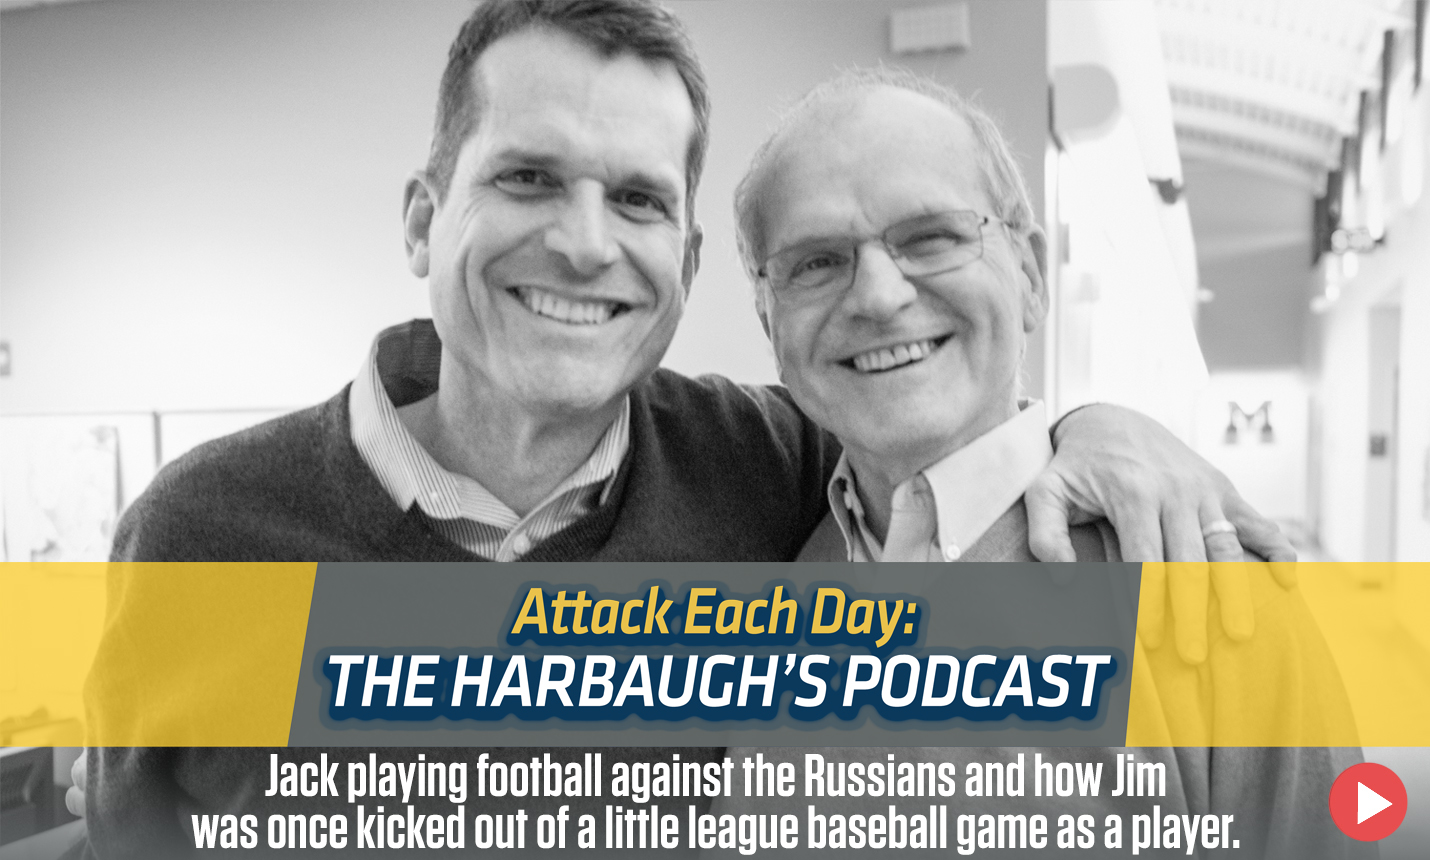 Attack Each Day: The Harbaugh Podcast